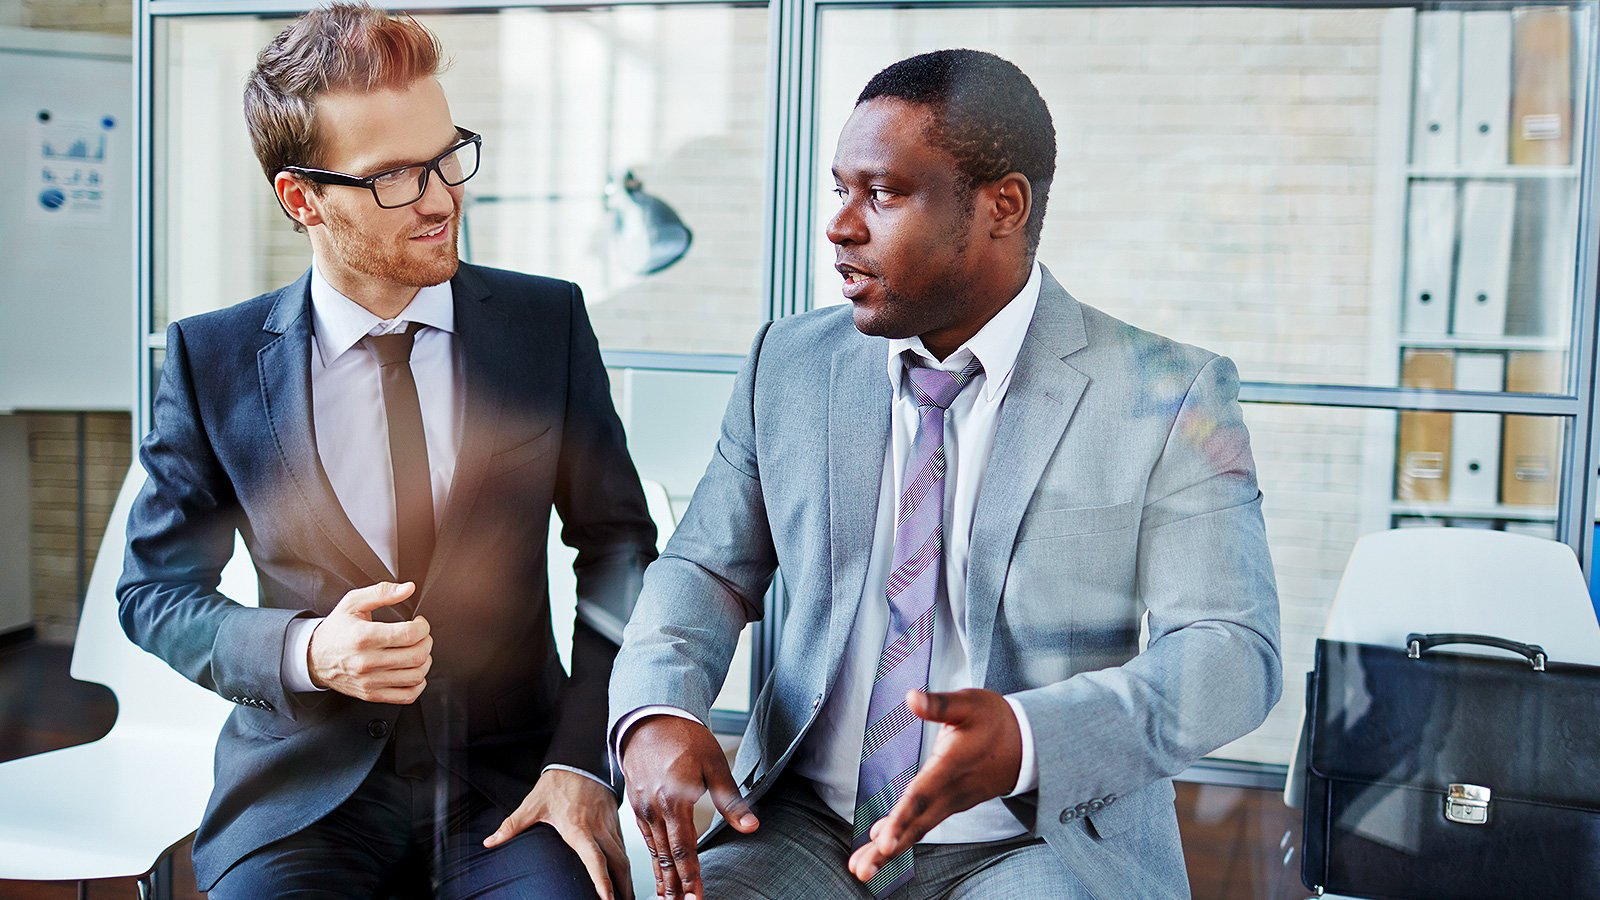 Two businessmen sitting side-by-side engaged in a discussion.